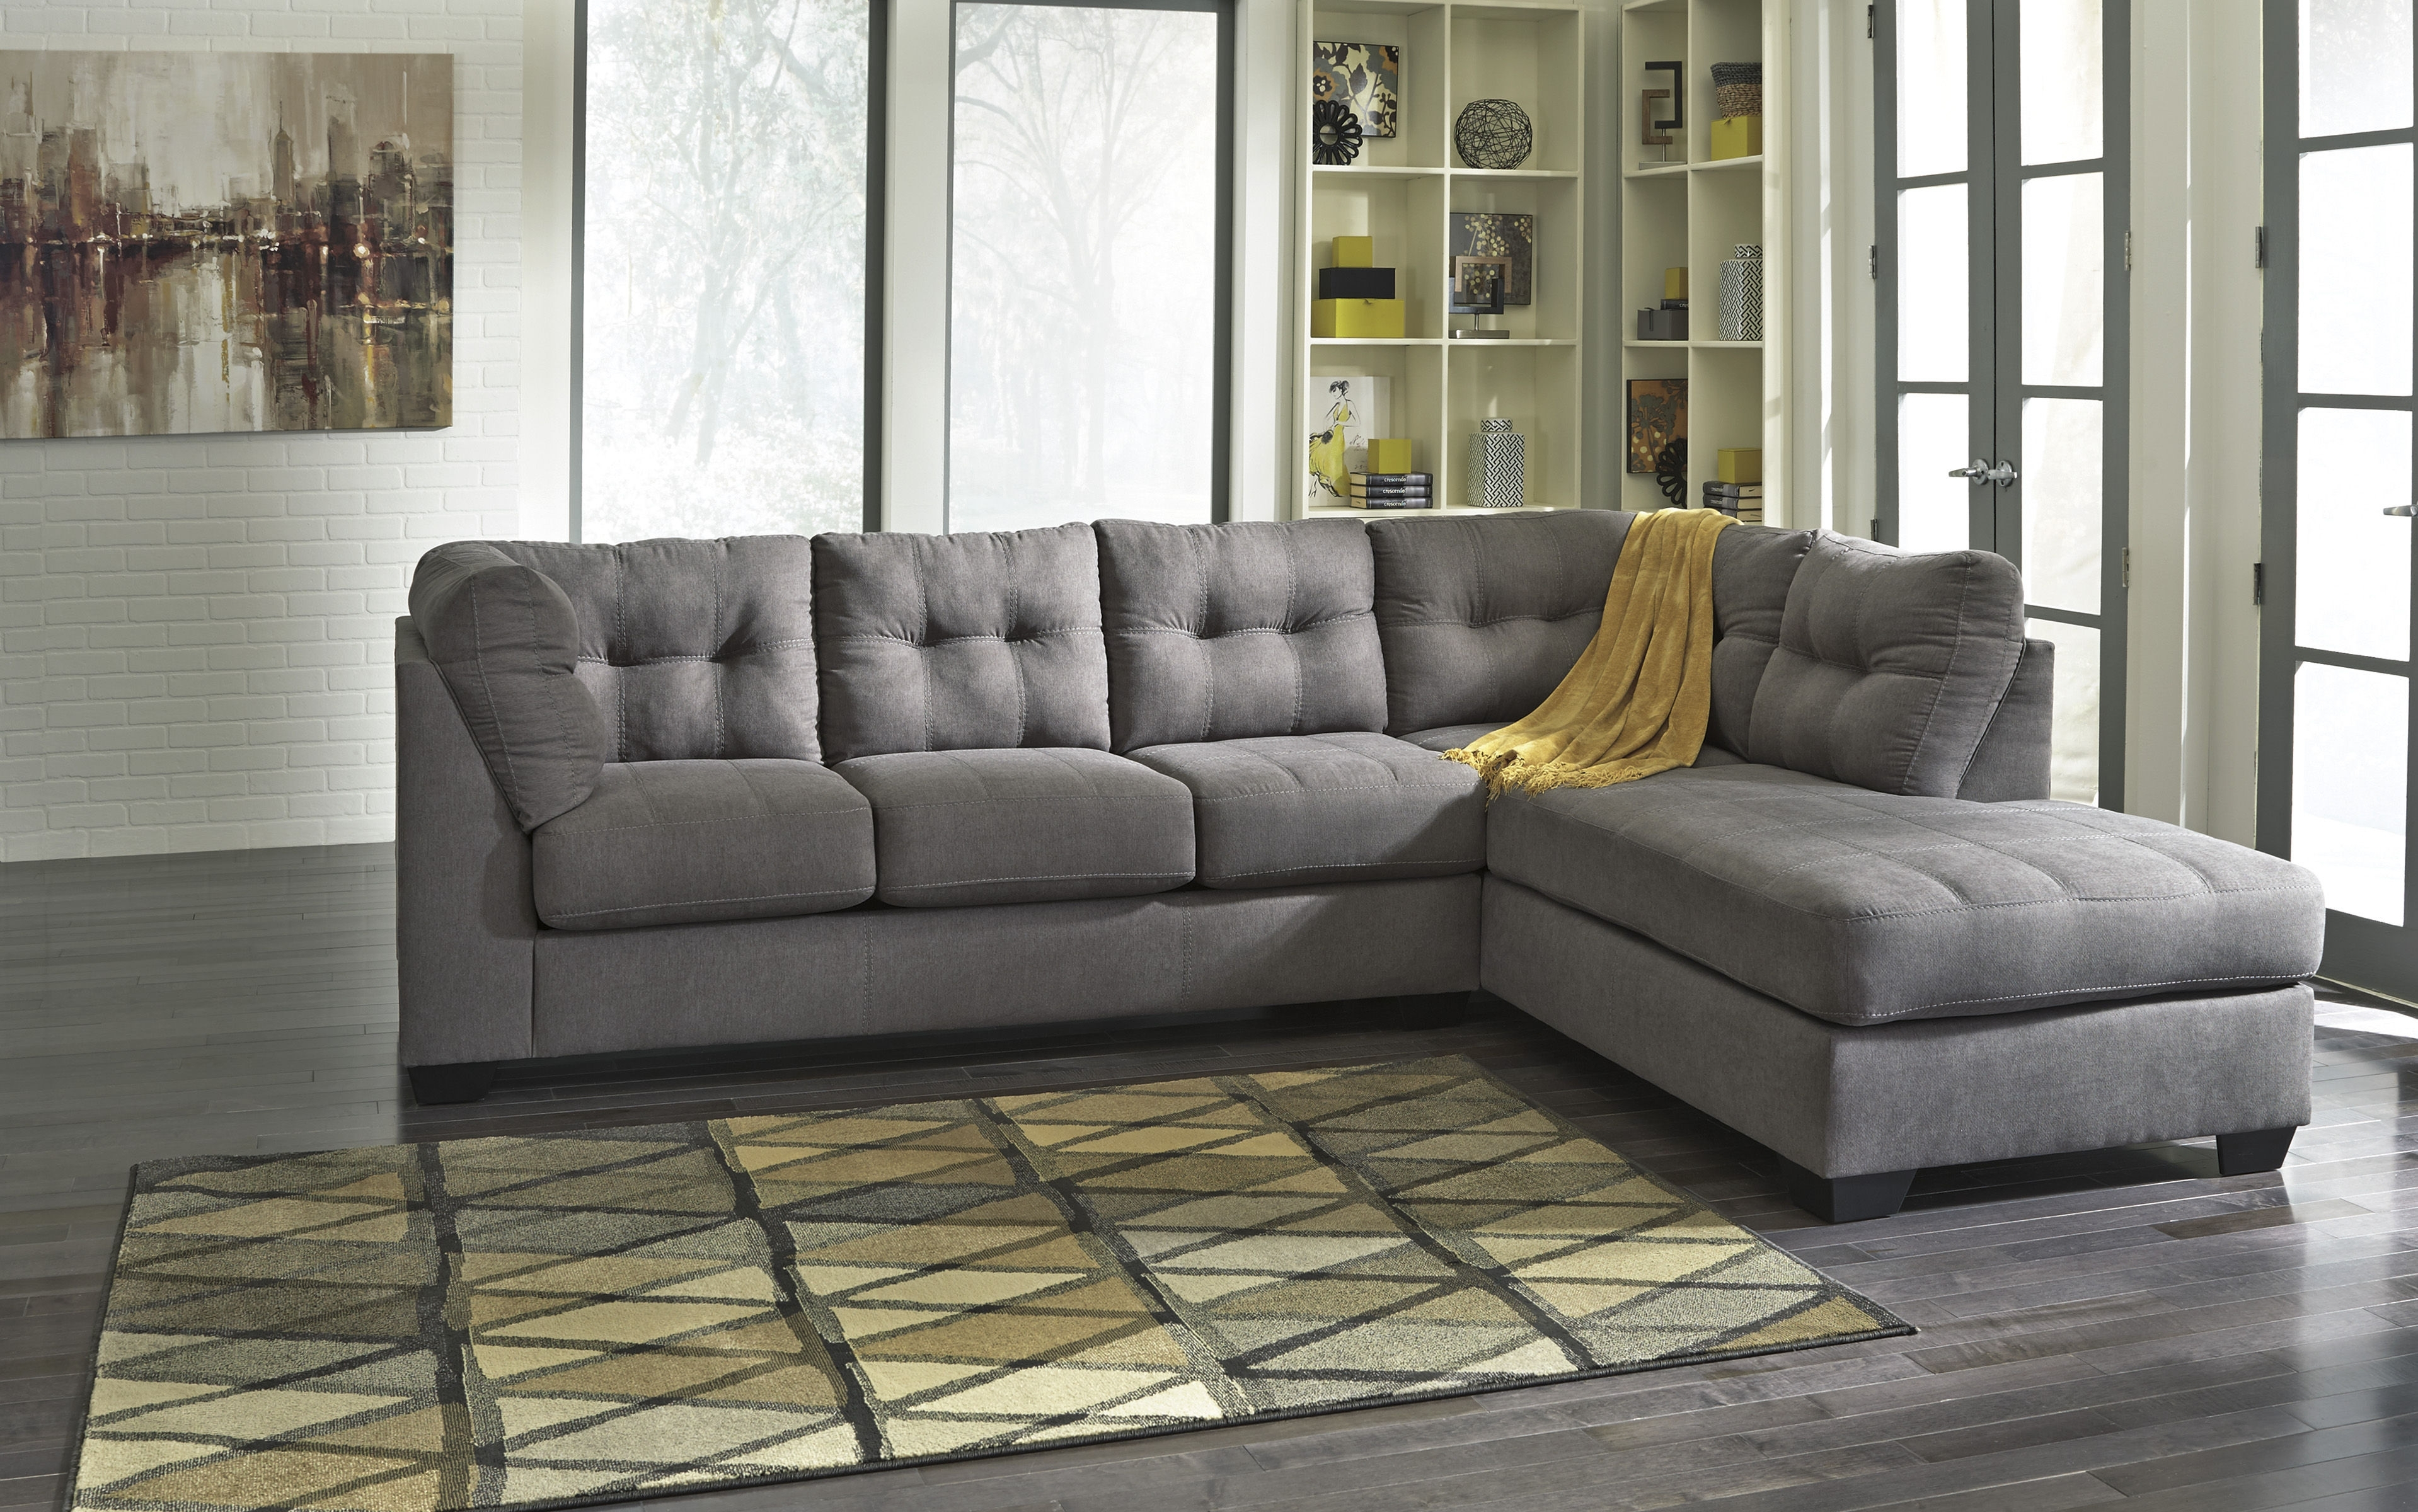 Ashley Furniture Maier Charcoal Raf Chaise Sectional | The Classy Home in Lucy Grey 2 Piece Sectionals With Laf Chaise (Image 4 of 30)